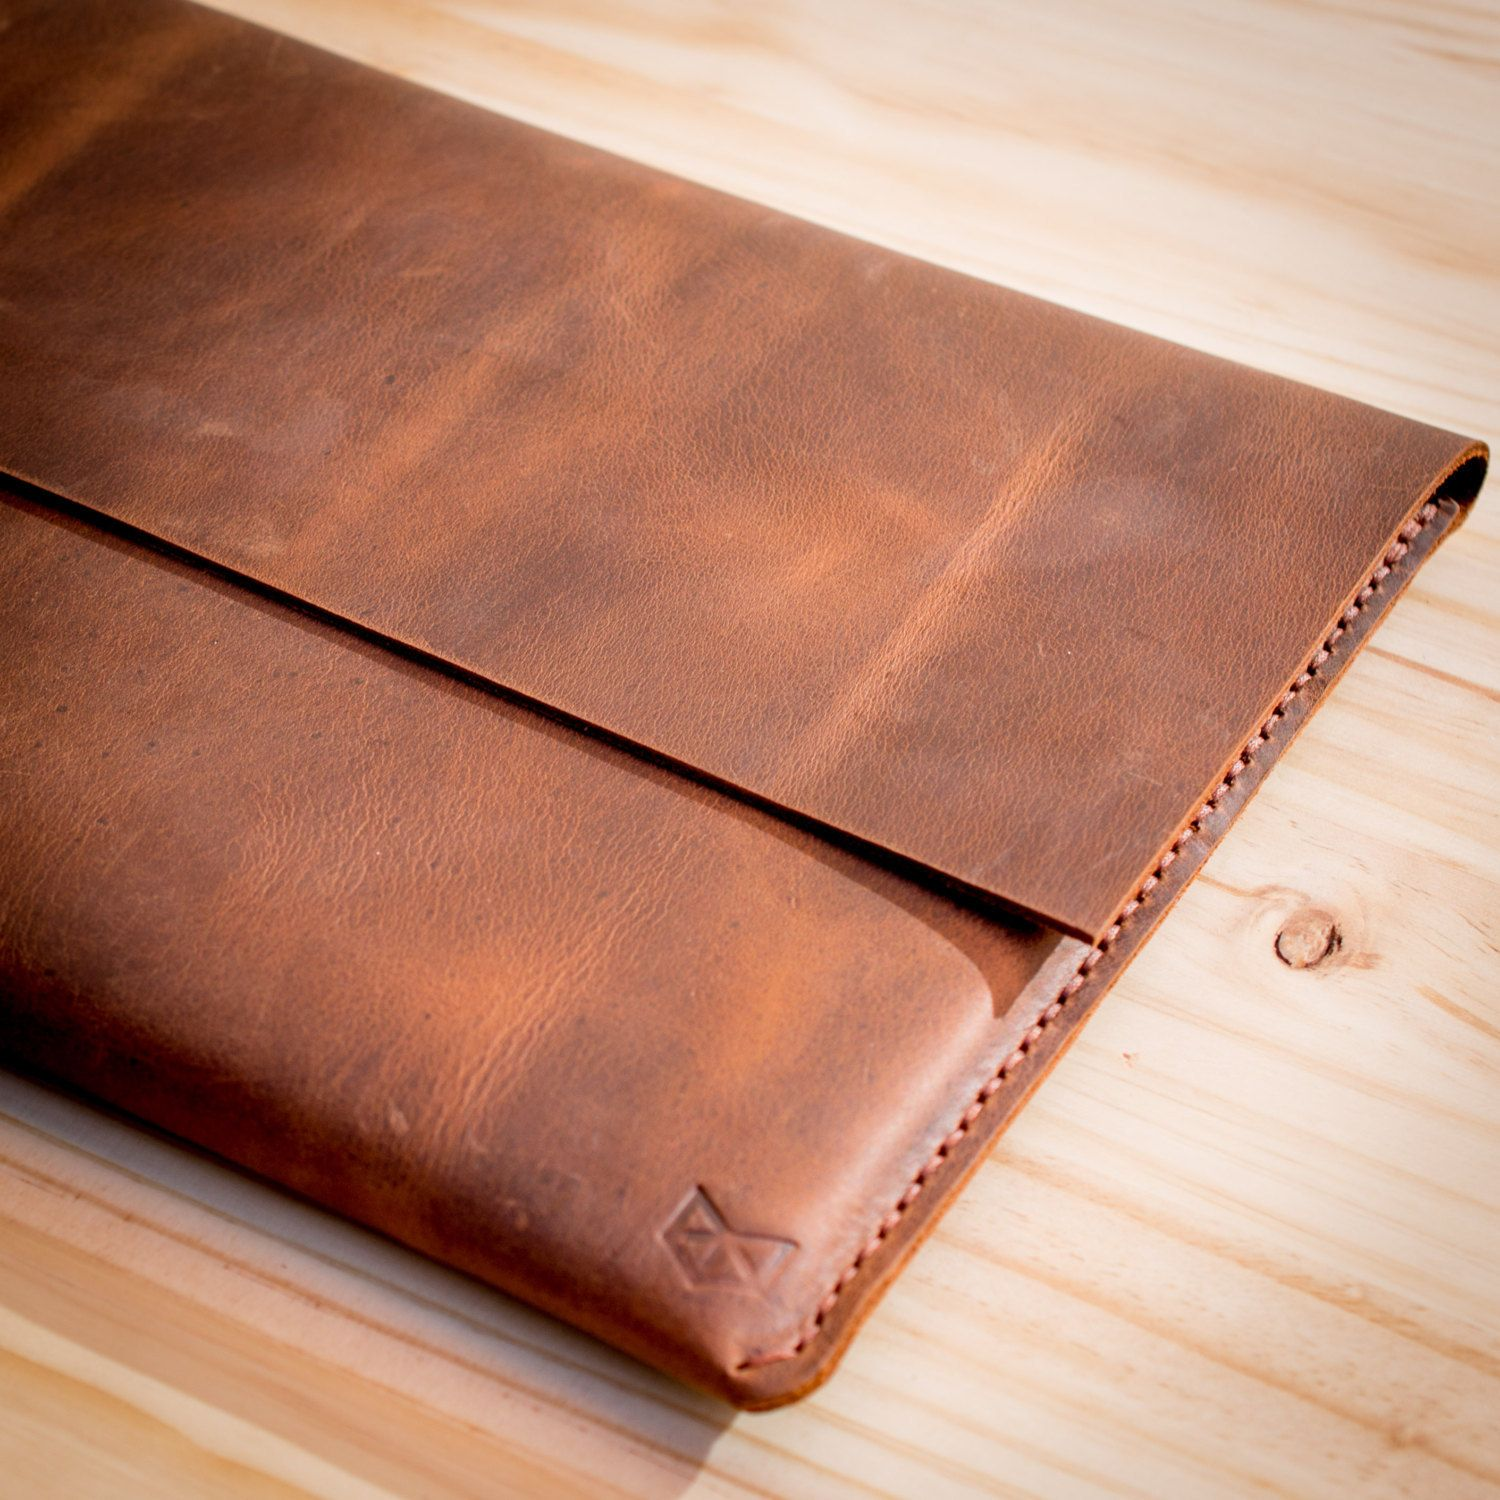 Capraleather Com Leather Laptop Sleeve Leather Wallet Leather Duffle Bag